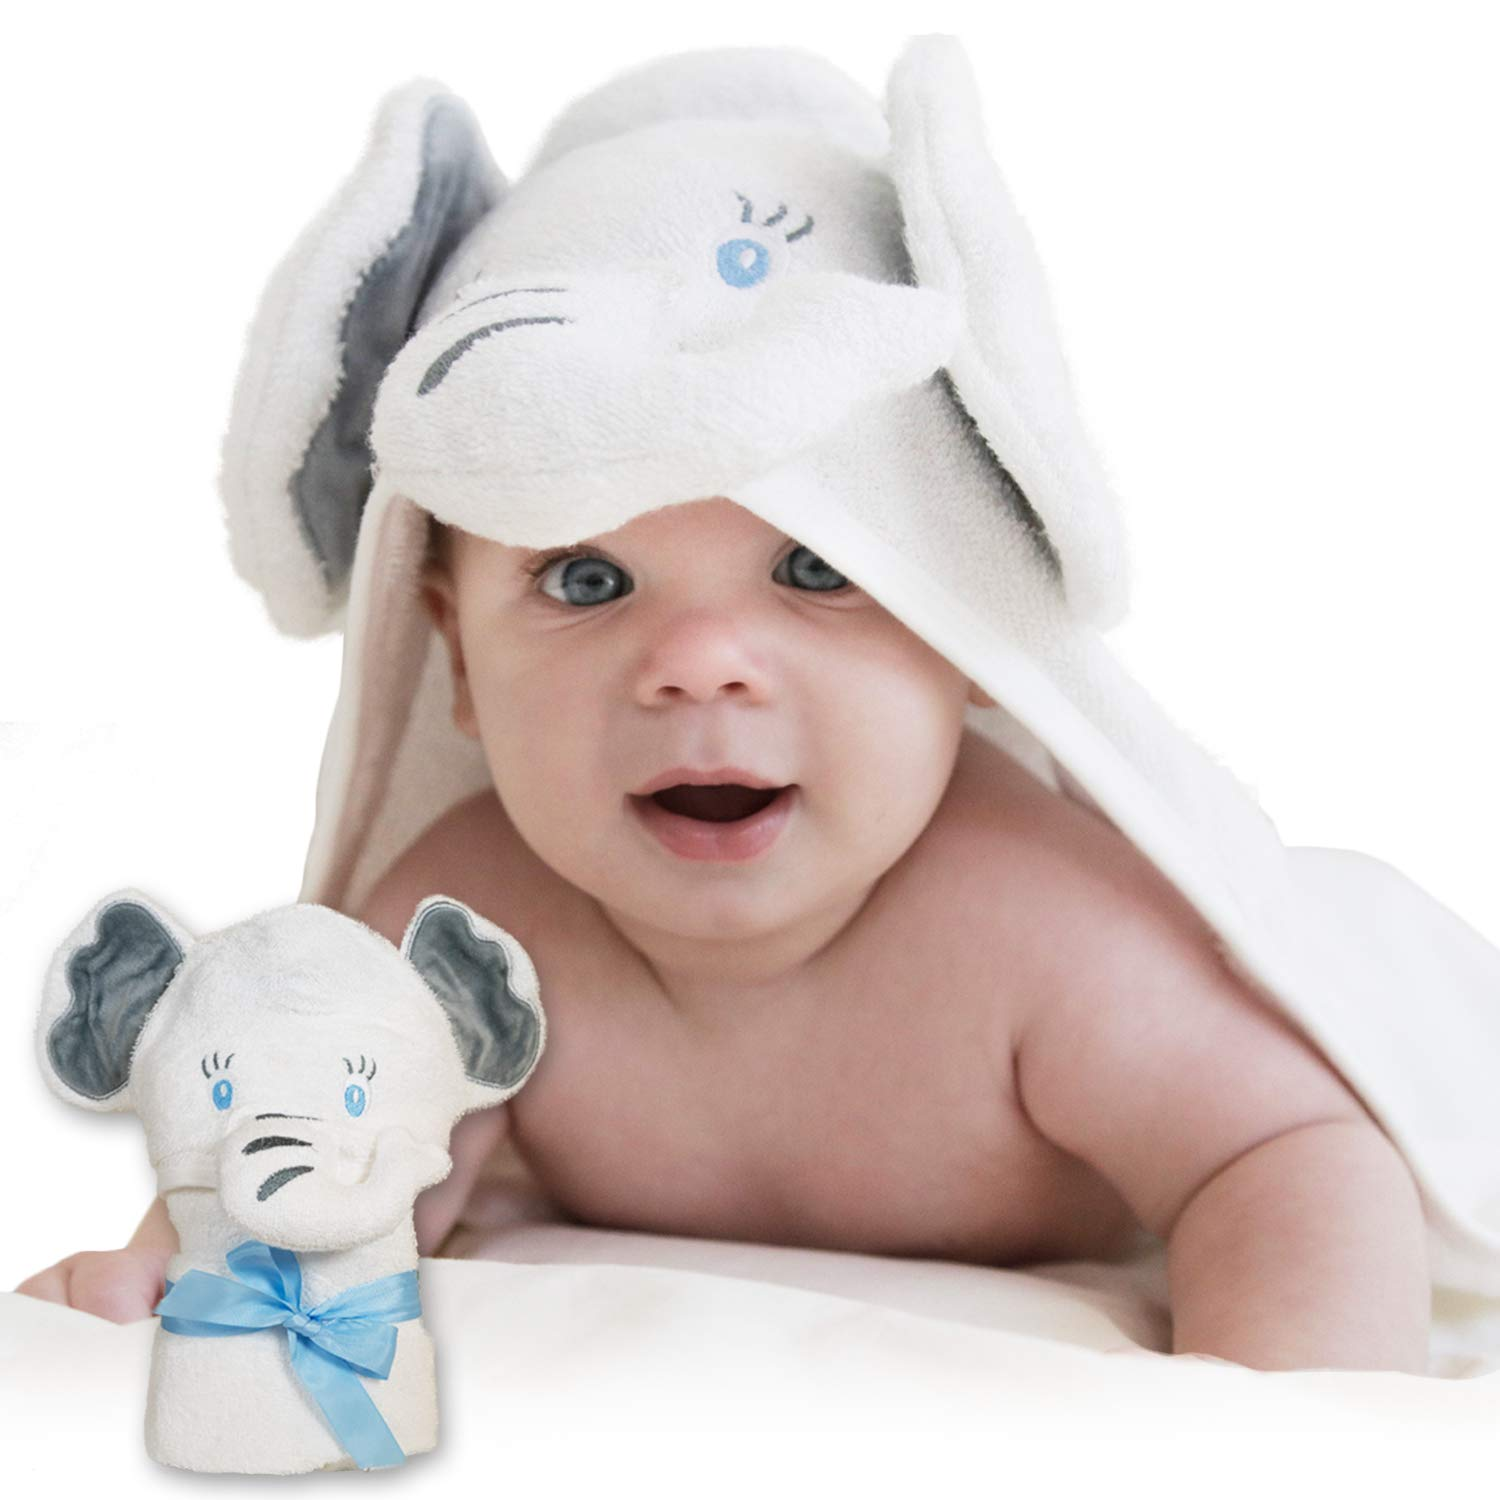 Organic Bamboo Baby Hooded Towel – Soft Baby Bath Towel with Elephant Hood, Safe for Newborns with Sensitive Skin – Large Baby Towel for Boys & Girls | Hooded Towels for Baby by Pupiki, 40x28""